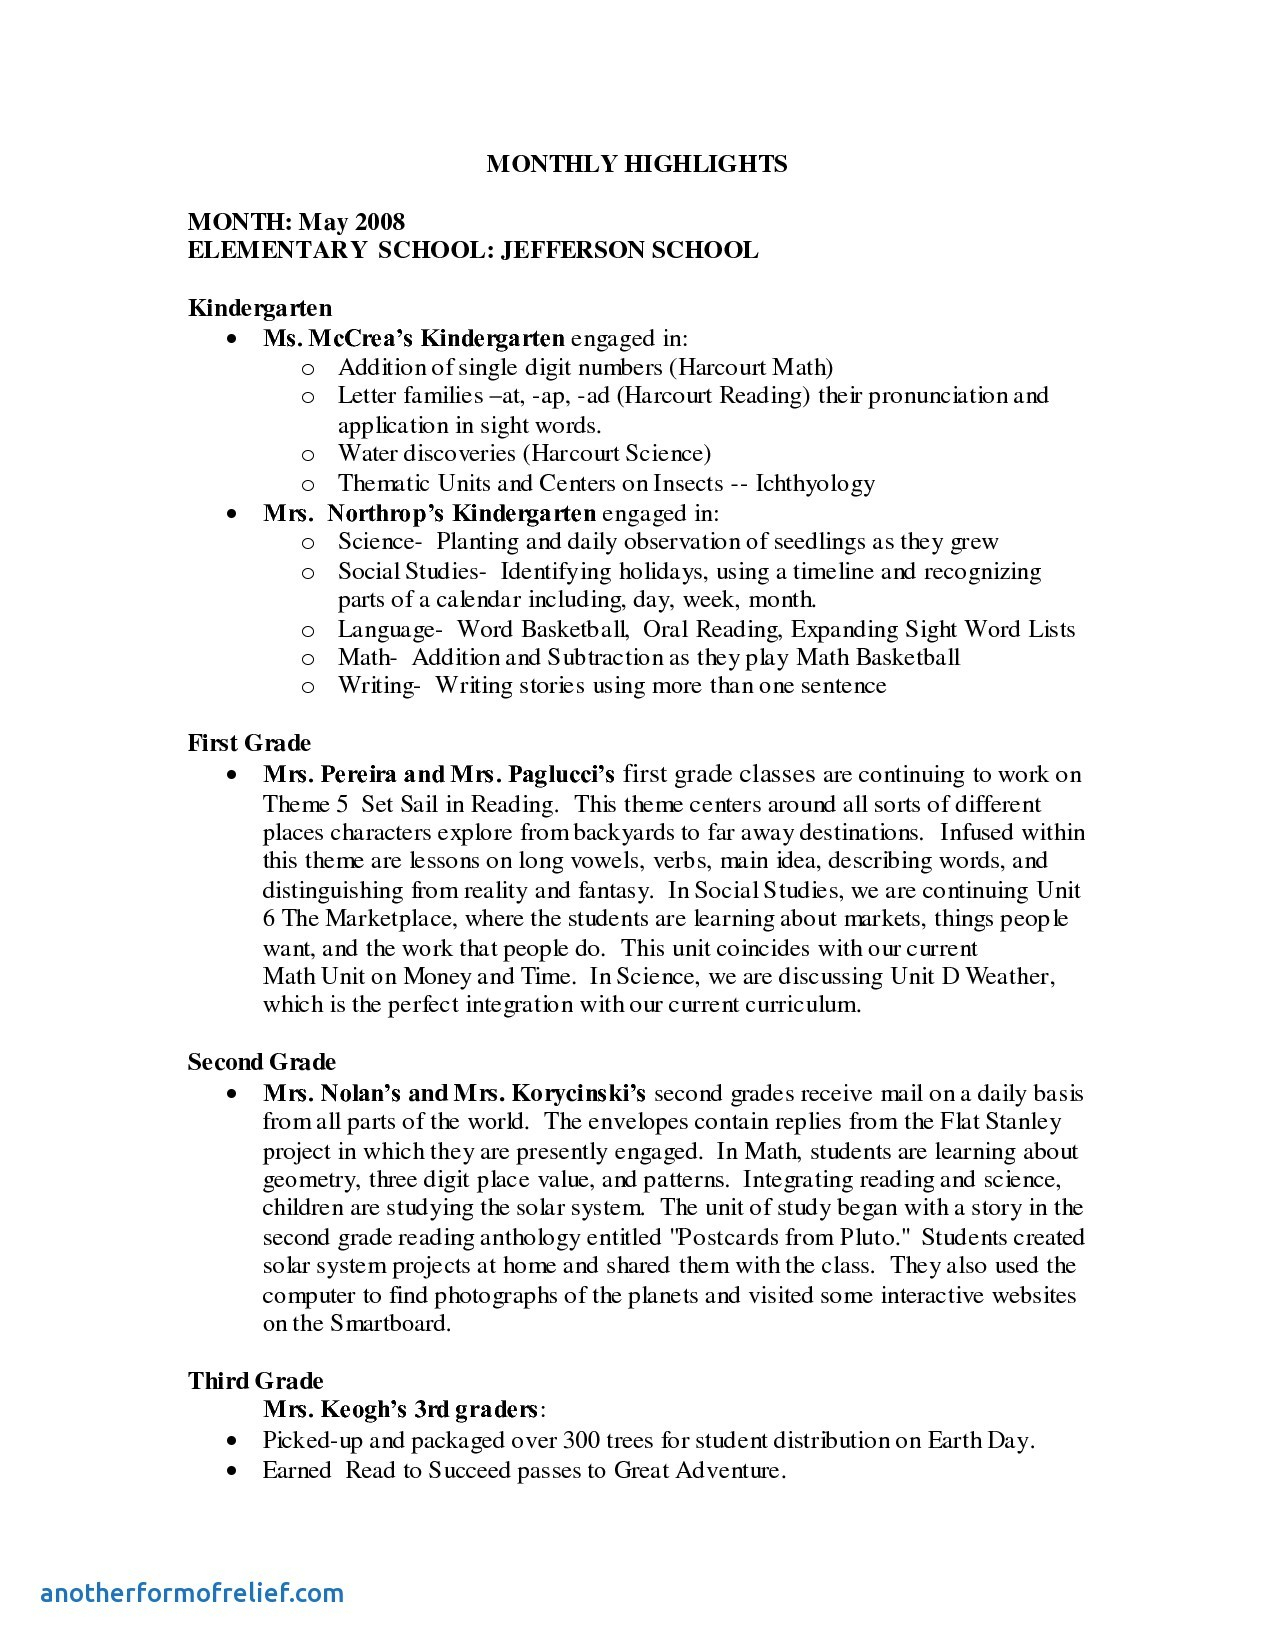 Book Report Template College Ten Awesome Things You Can Inside College Book Report Template